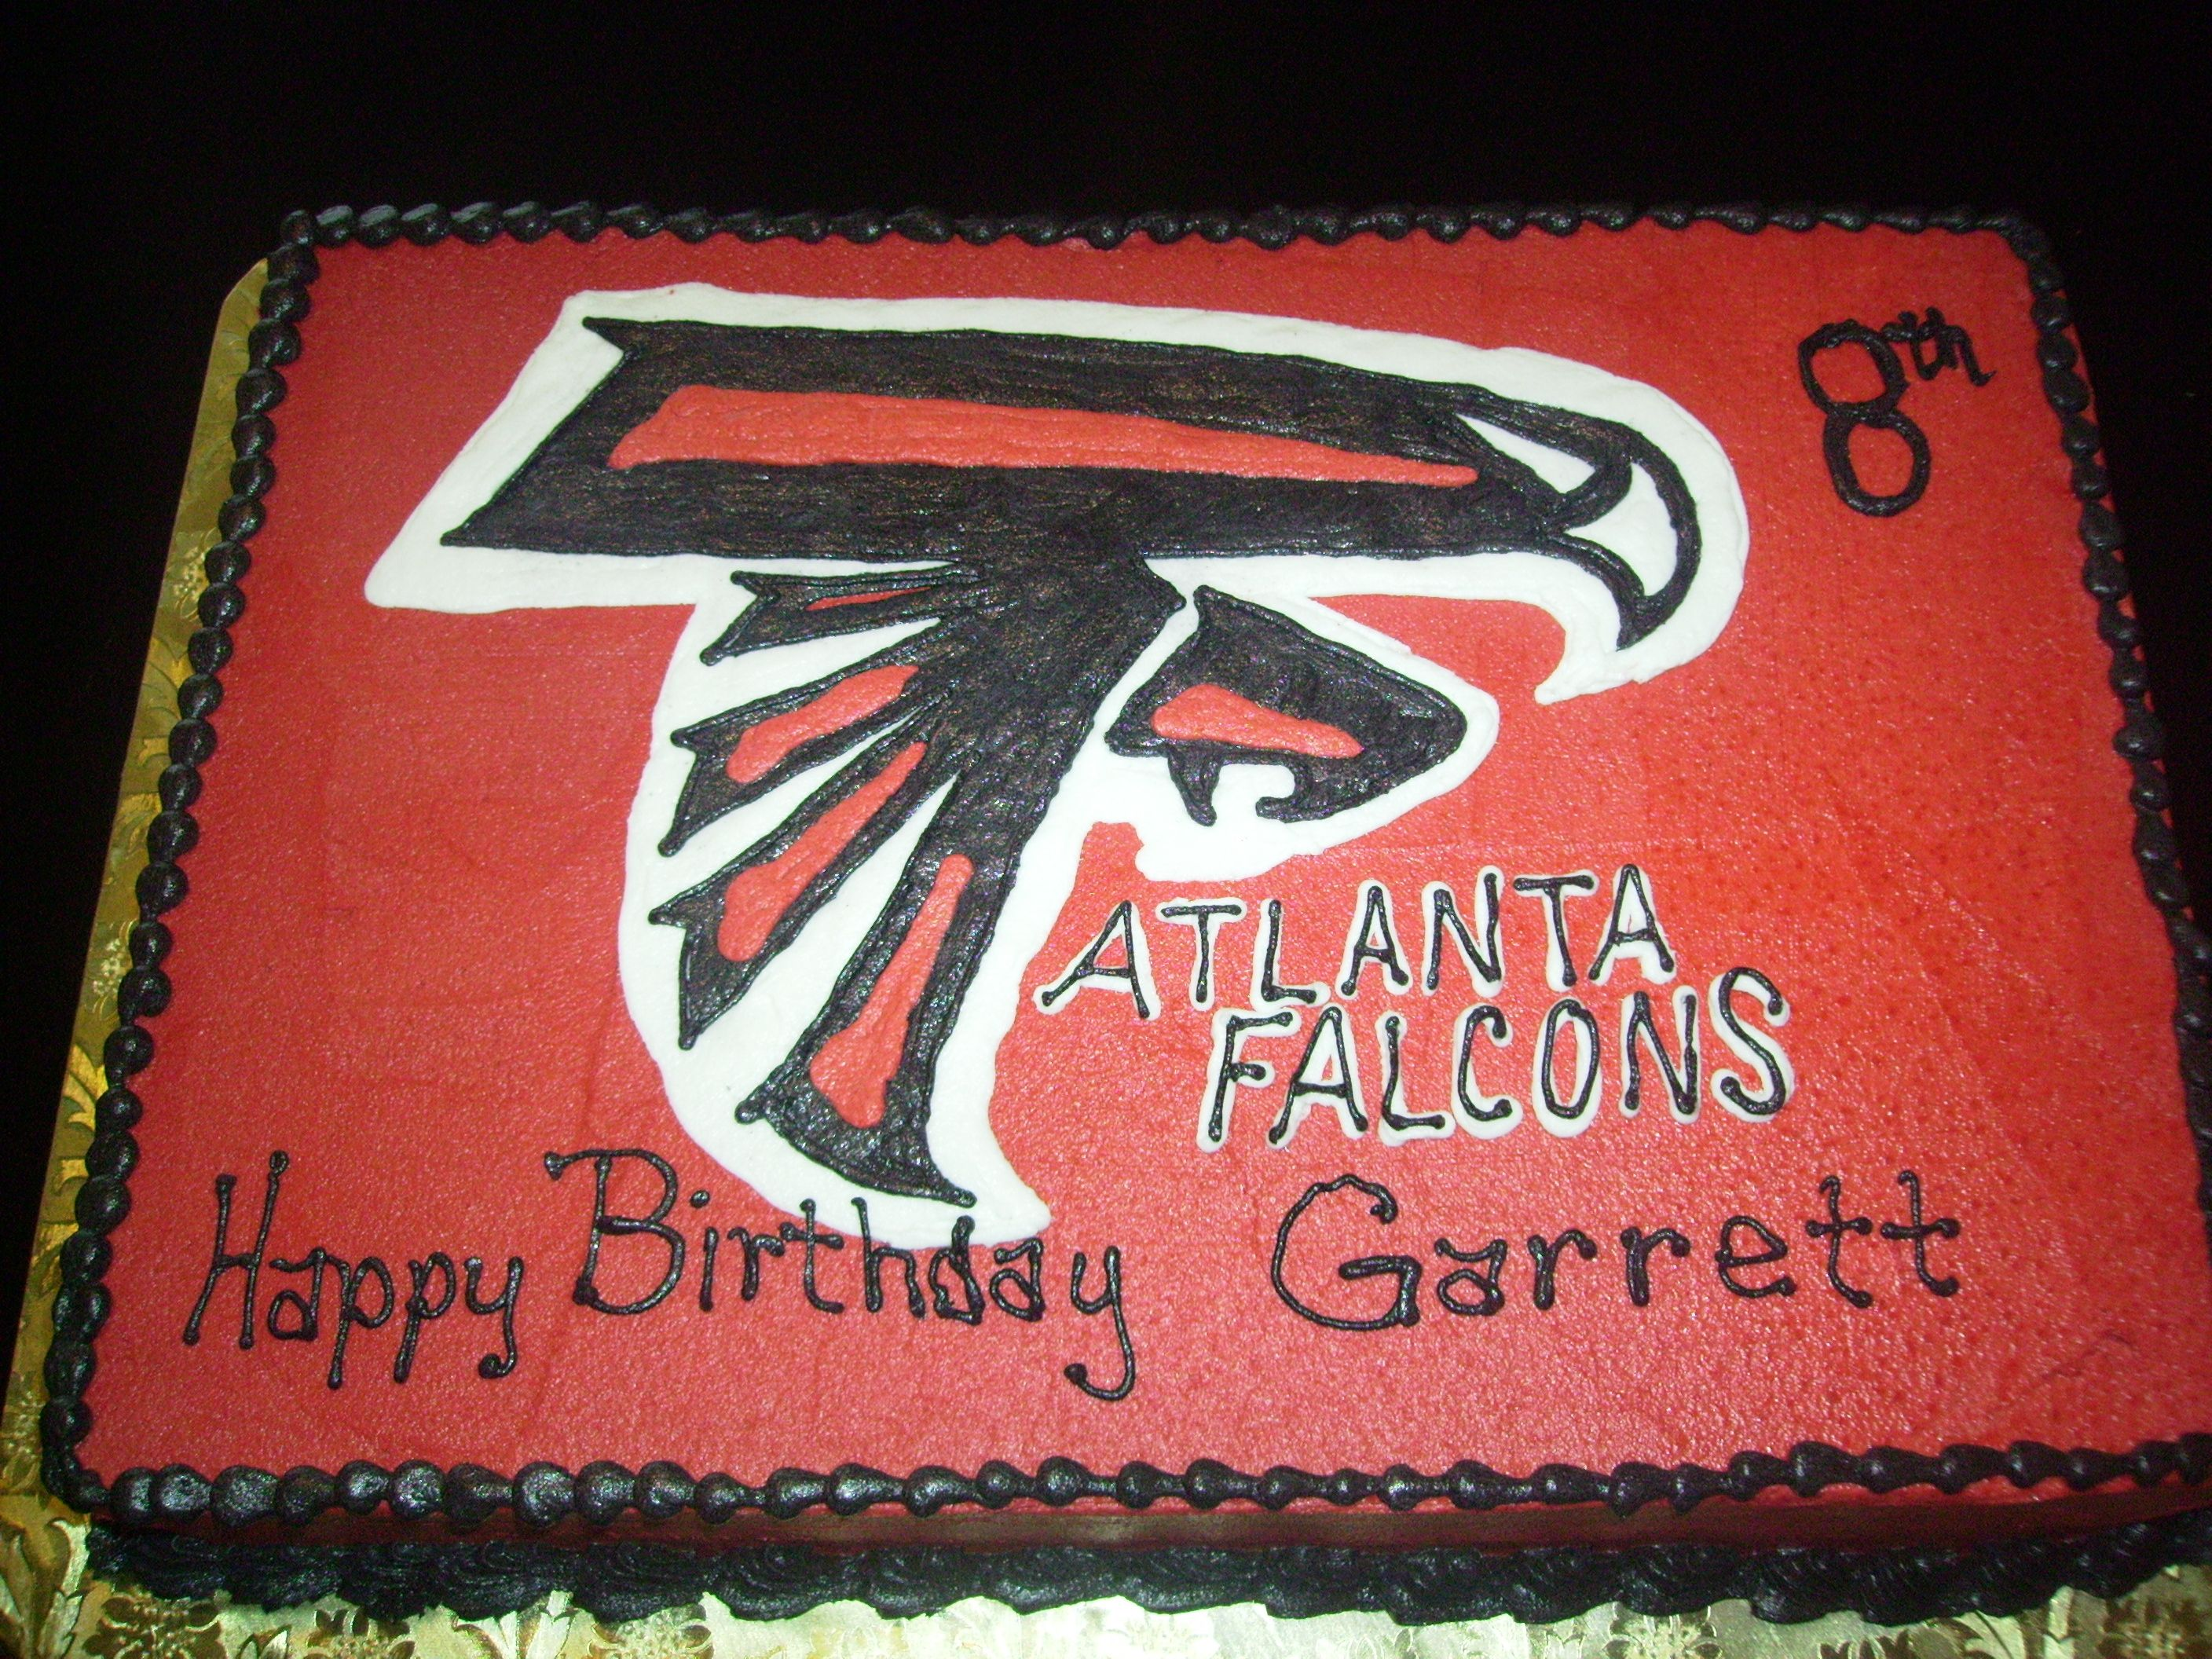 Atlanta Falcons Birthday Cake The Amazing Cakes Bakery Pinterest